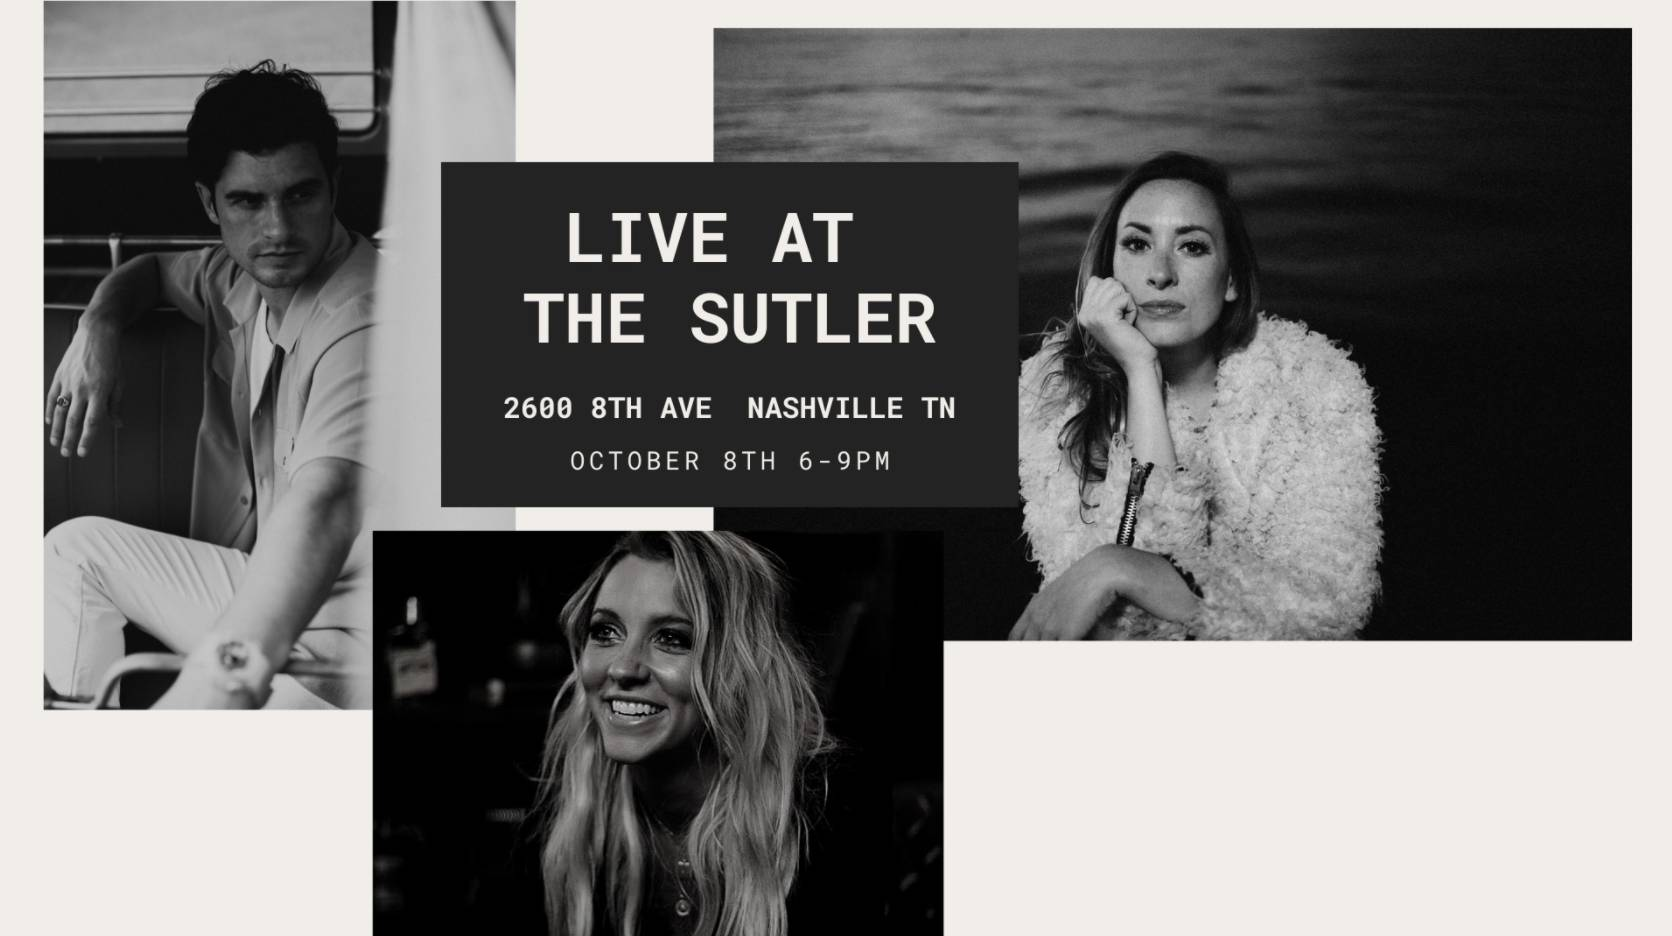 Live Music w/ Sadie Campbell & more